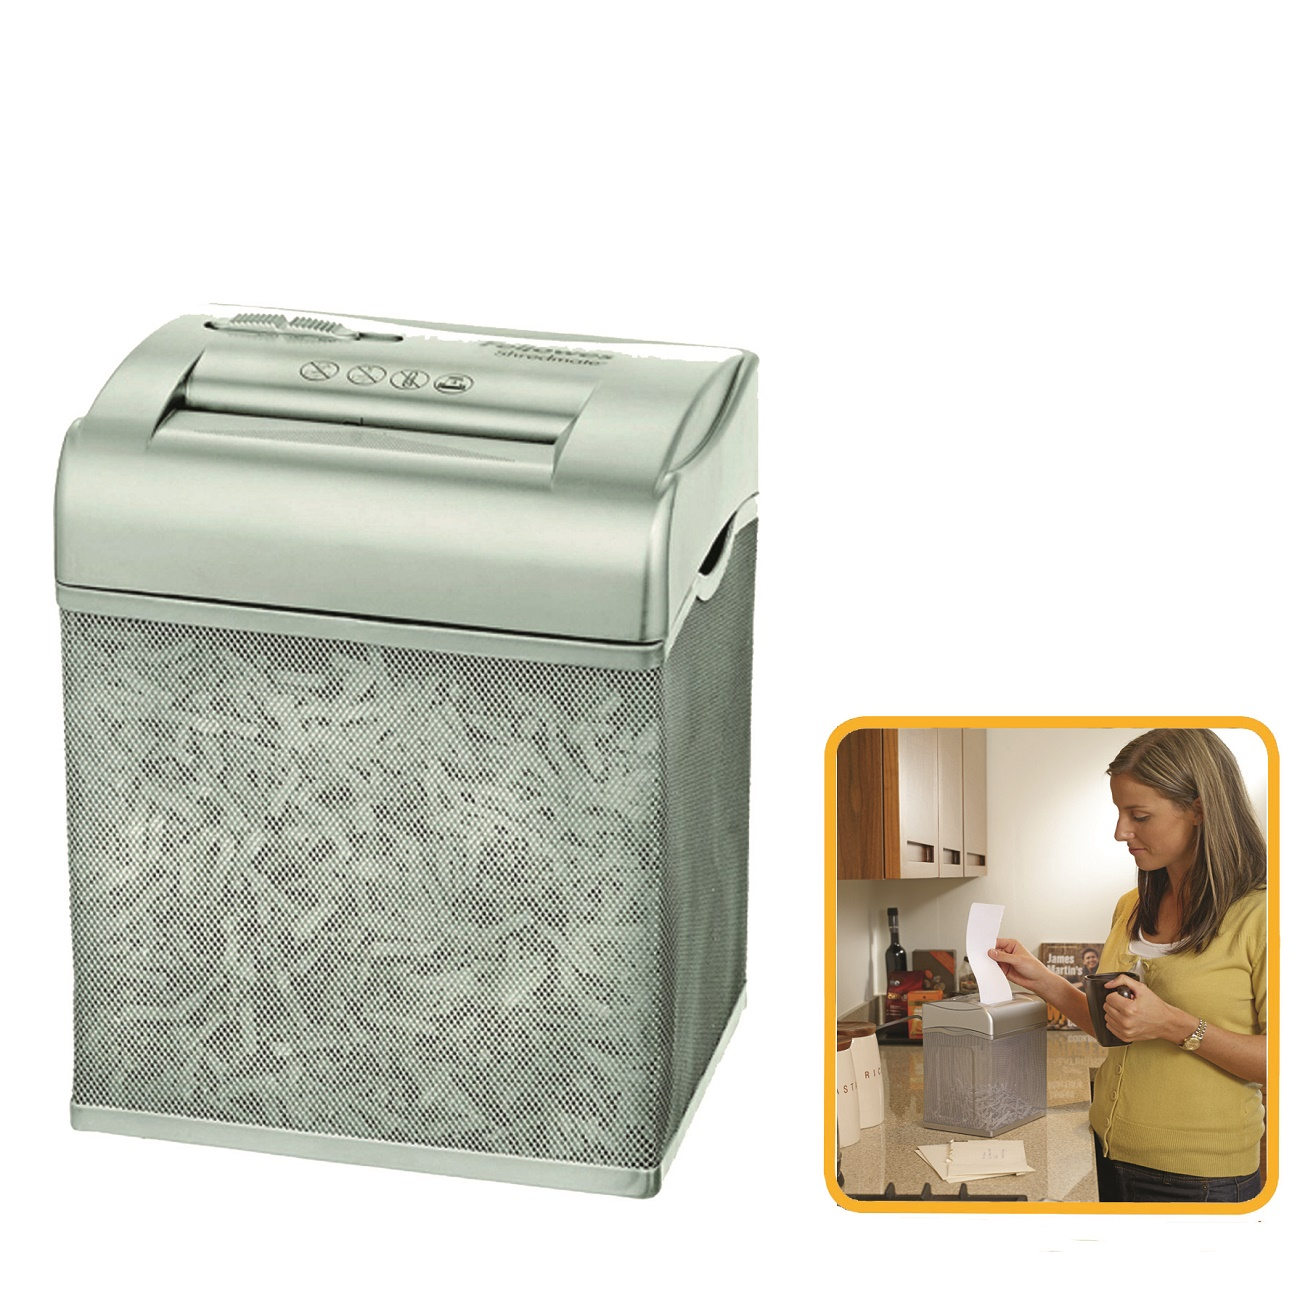 Destruidora de Papel Fellowes Shredmate, 4fls, 4,5L